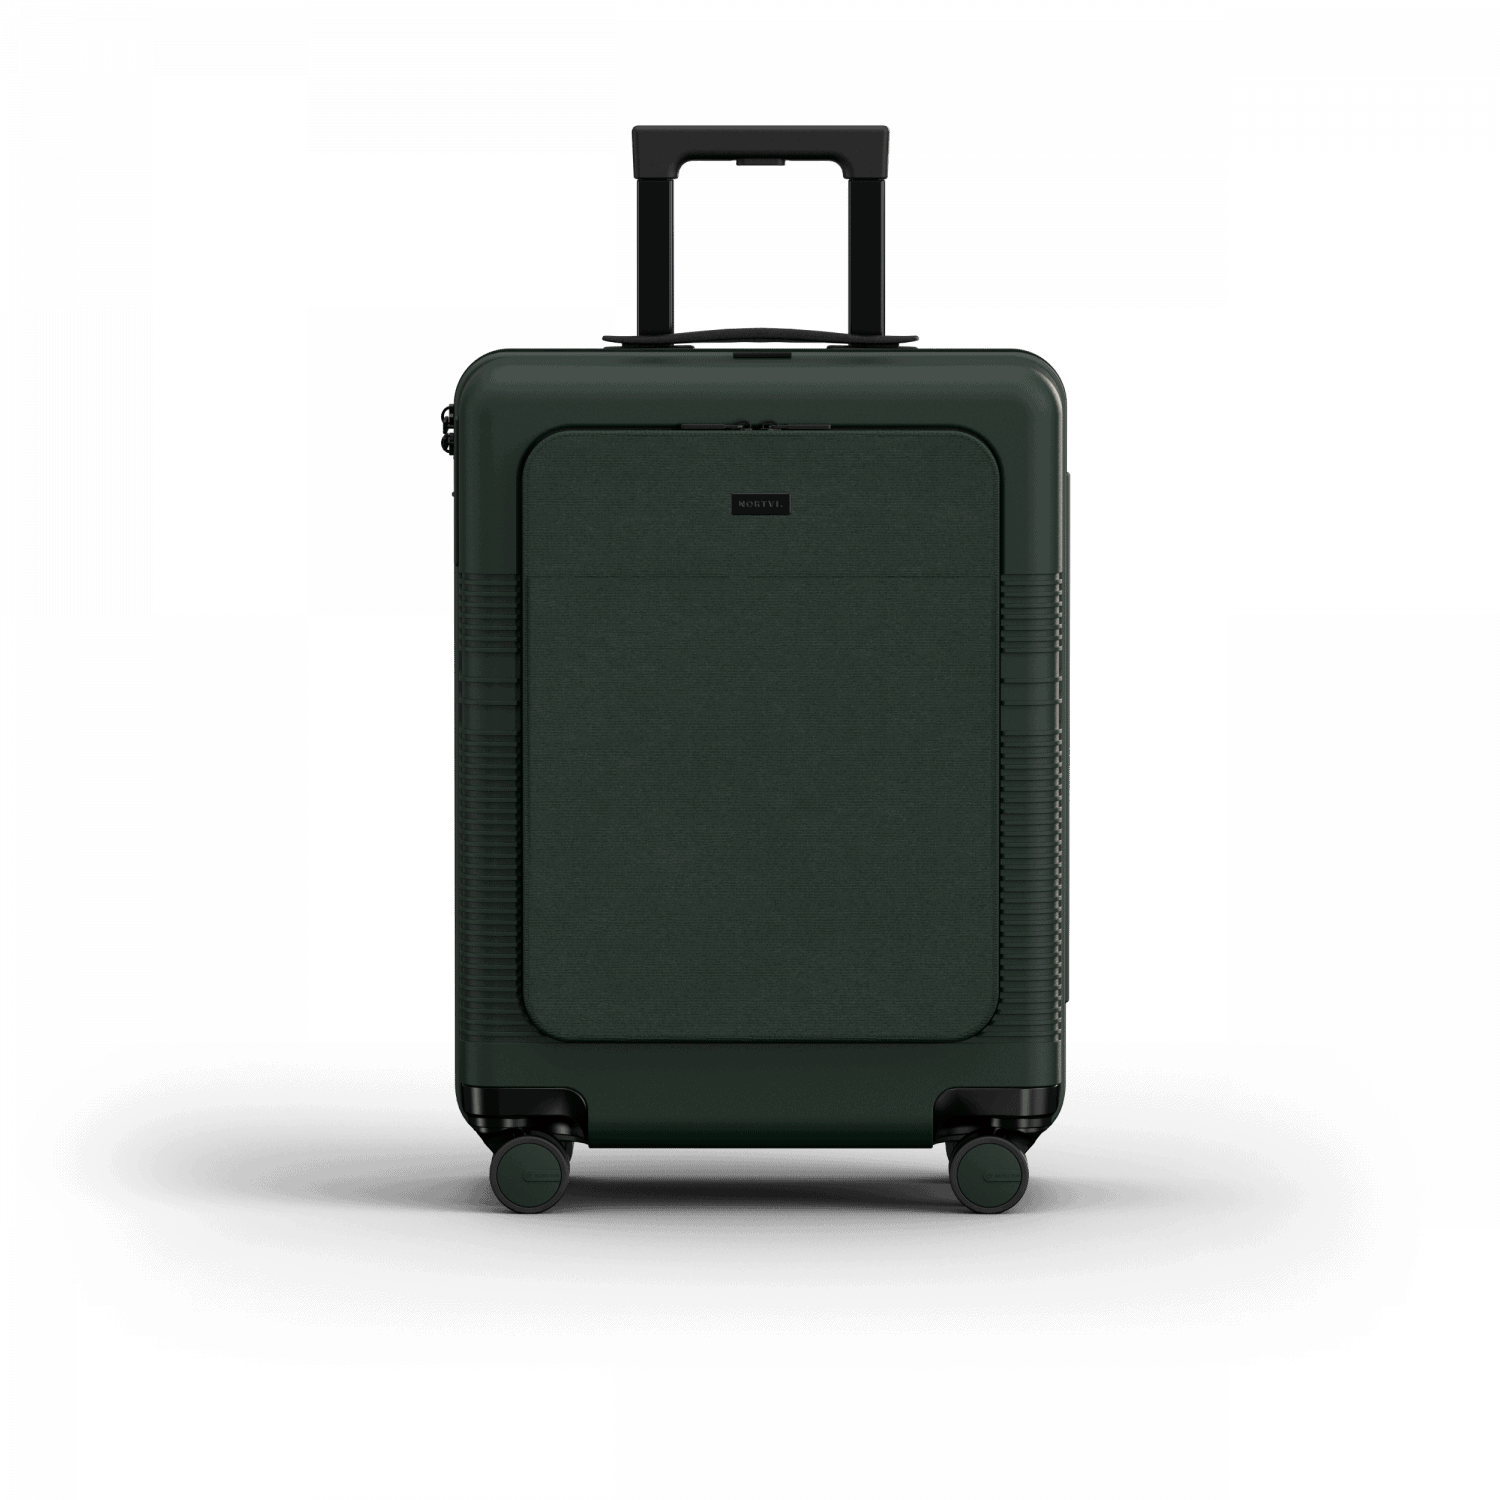 NORTVI sustainable design suitcase Rainforest Green met Front Pocket 39 L gemaakt van duurzaam materiaal.